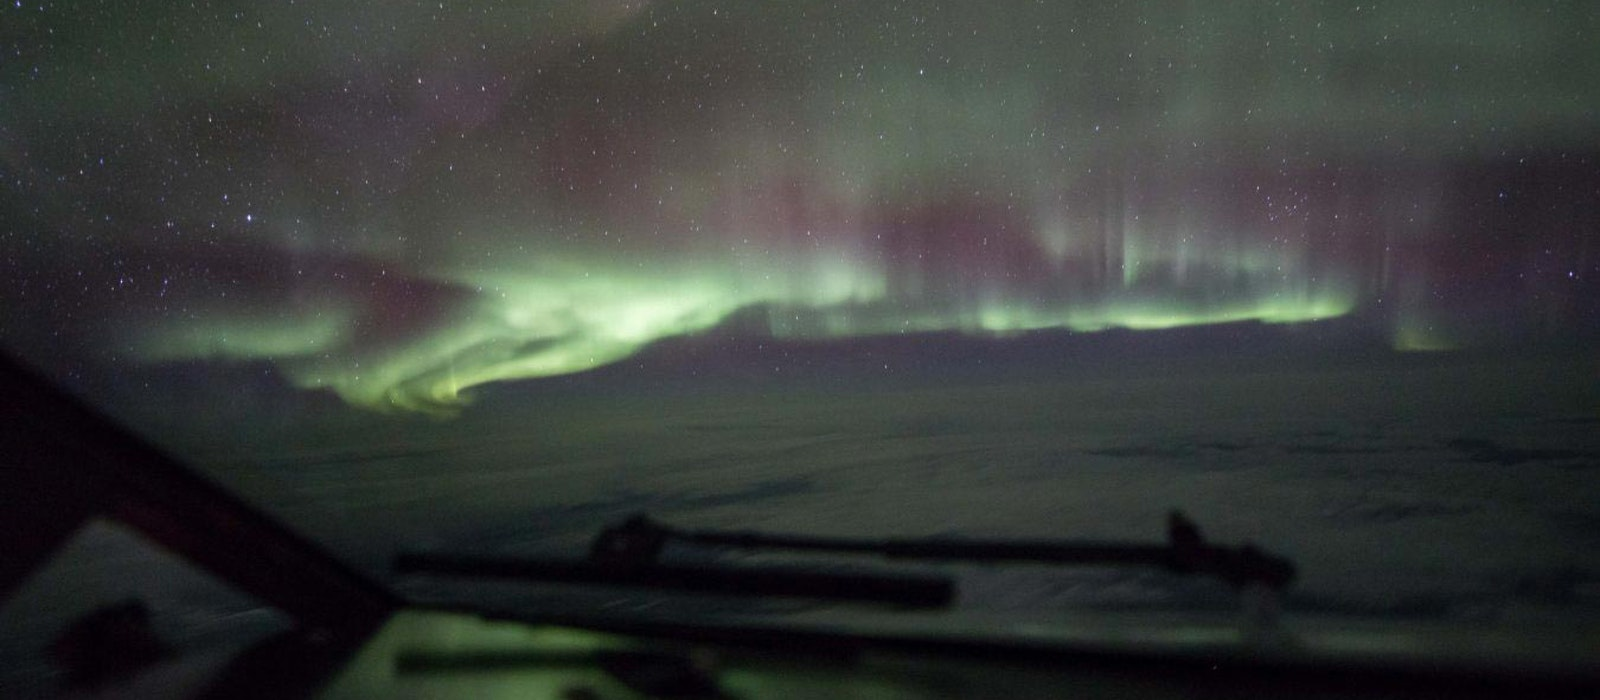 A view from last year's Aurora | 360 flight over the Yukon Territory